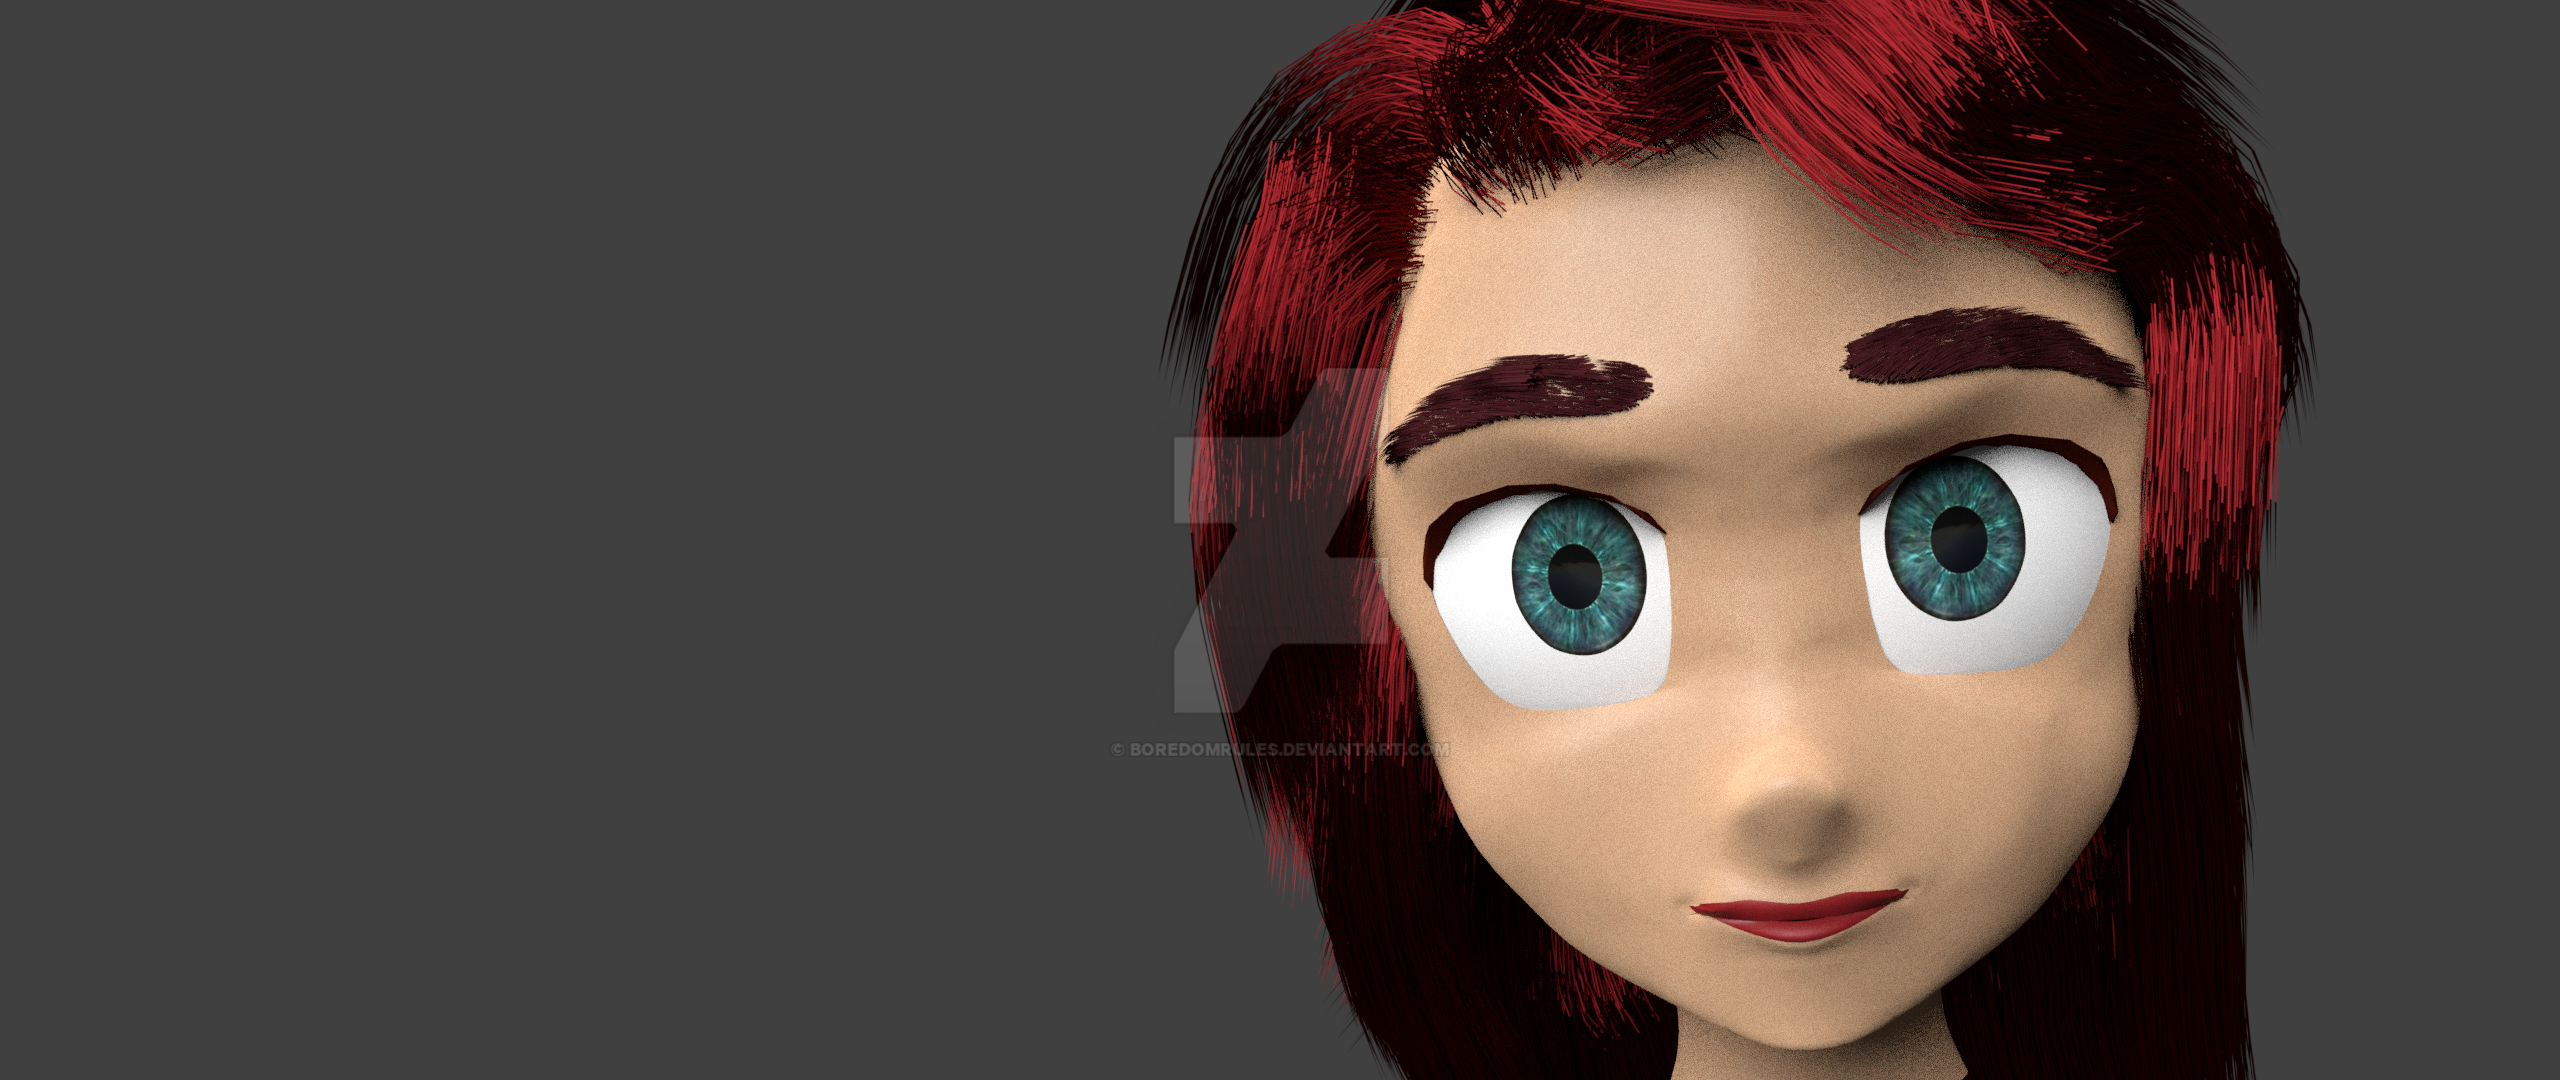 First character creation in Blender by BoredomRules